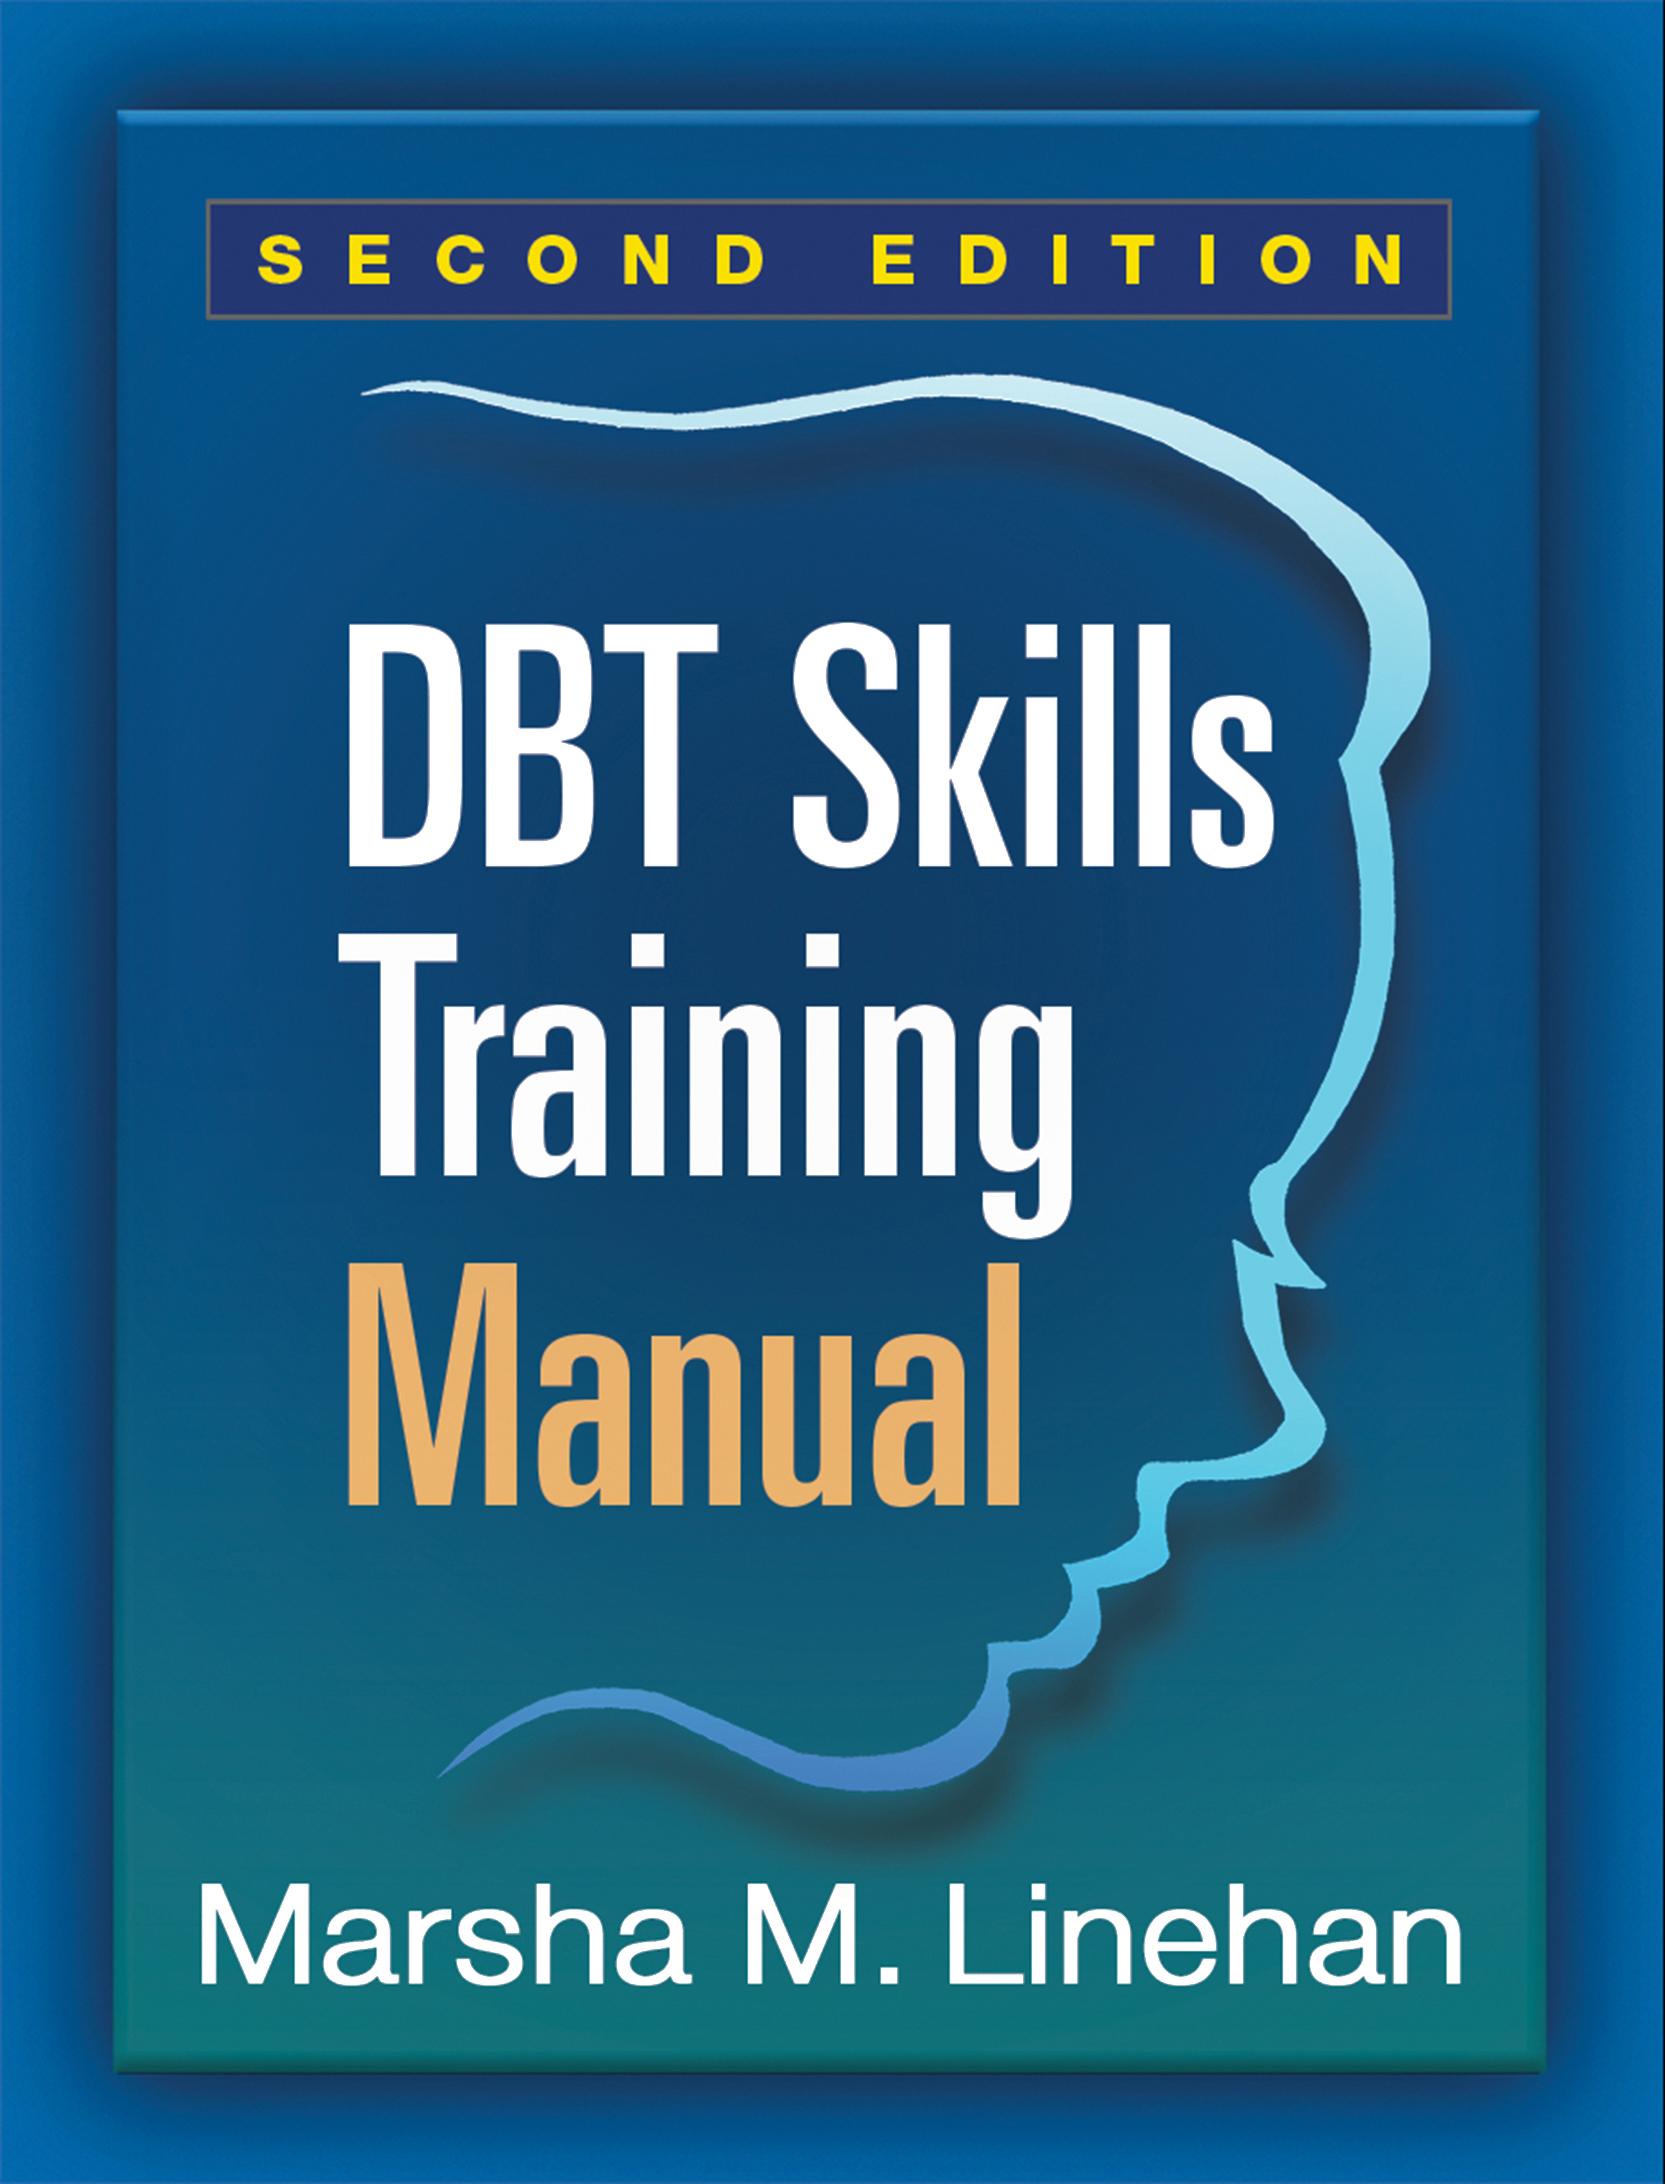 DBT Skills Training Manual, Second Edition book cover